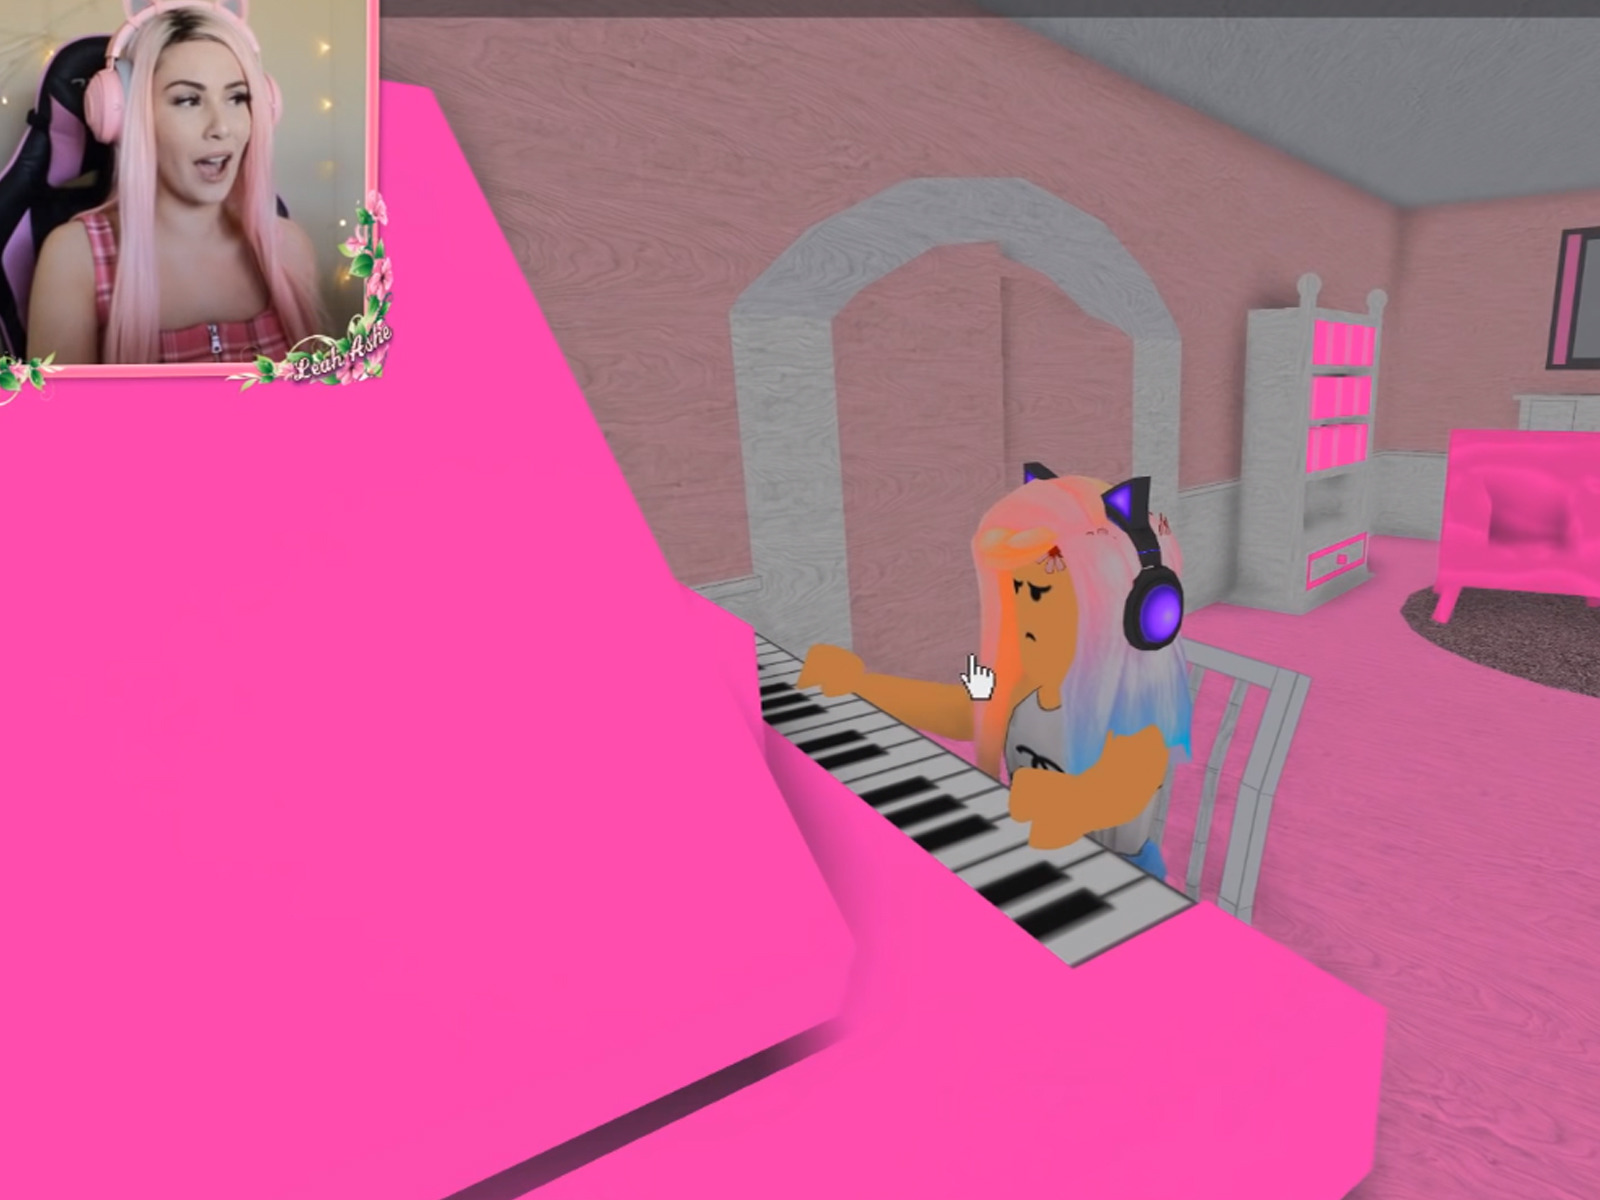 Buying A Huge Mansion For My Meep In Roblox 24 000 Meepcity Coin Spending Spree Prime Video Clip Leah Ashe